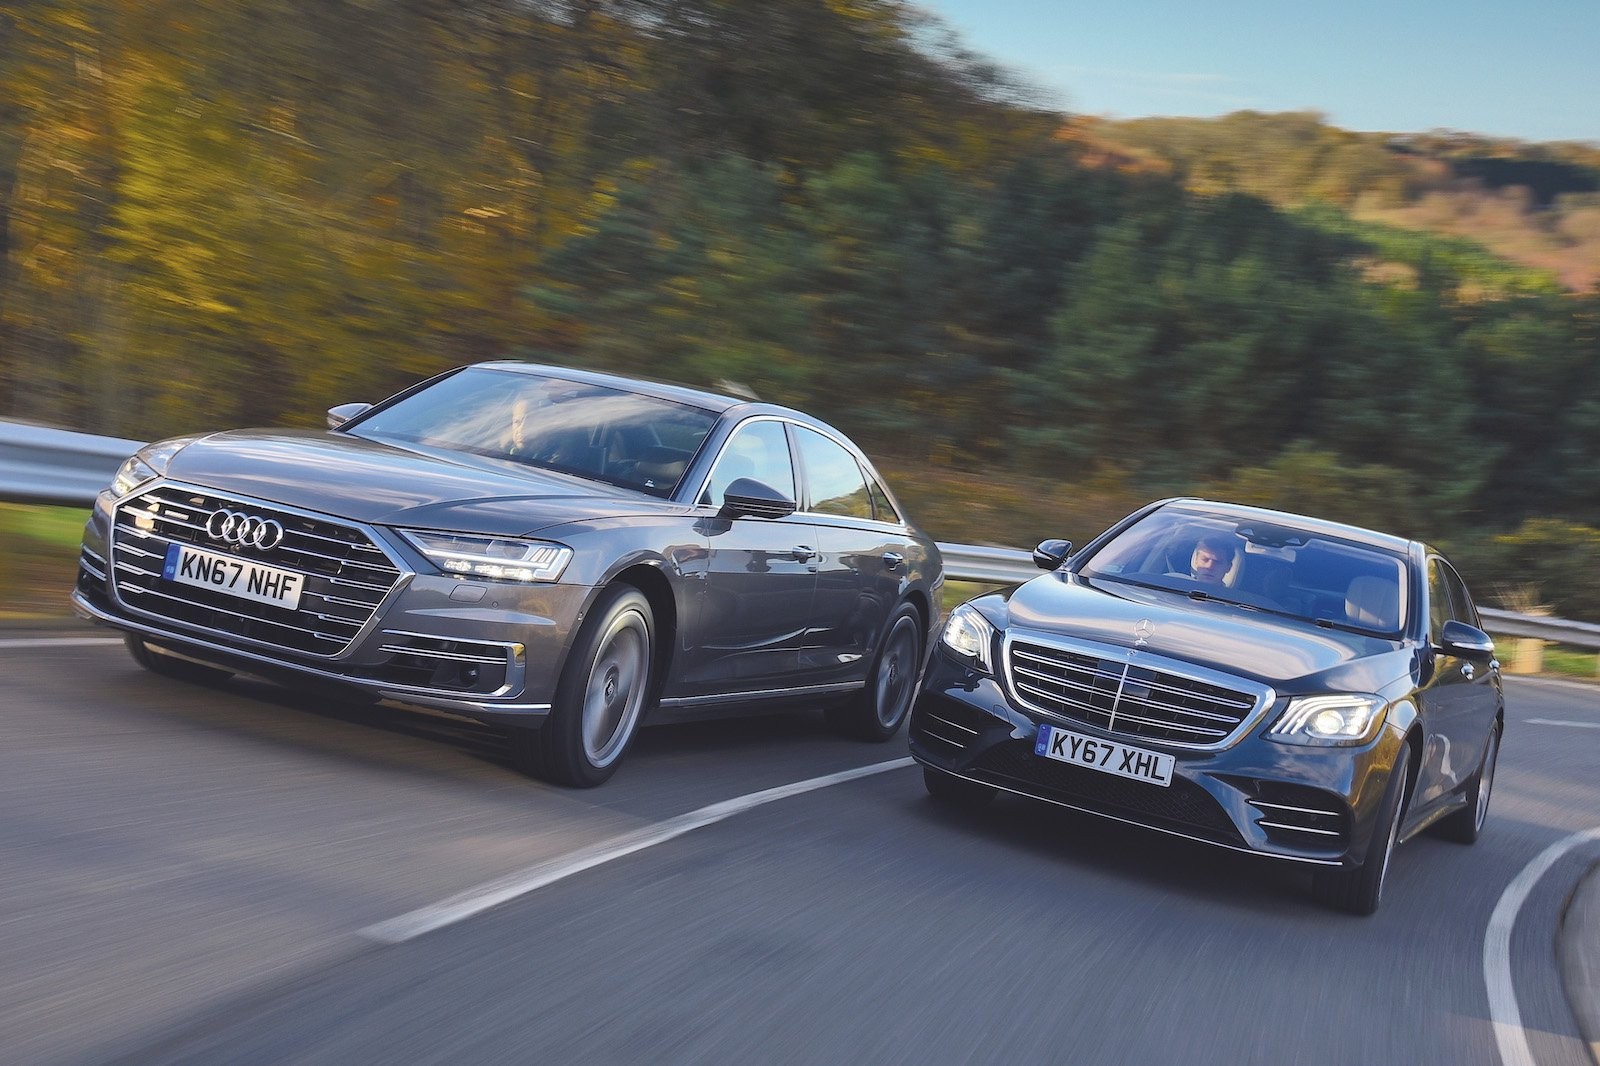 Used test: Audi A8 vs Mercedes-Benz S-Class